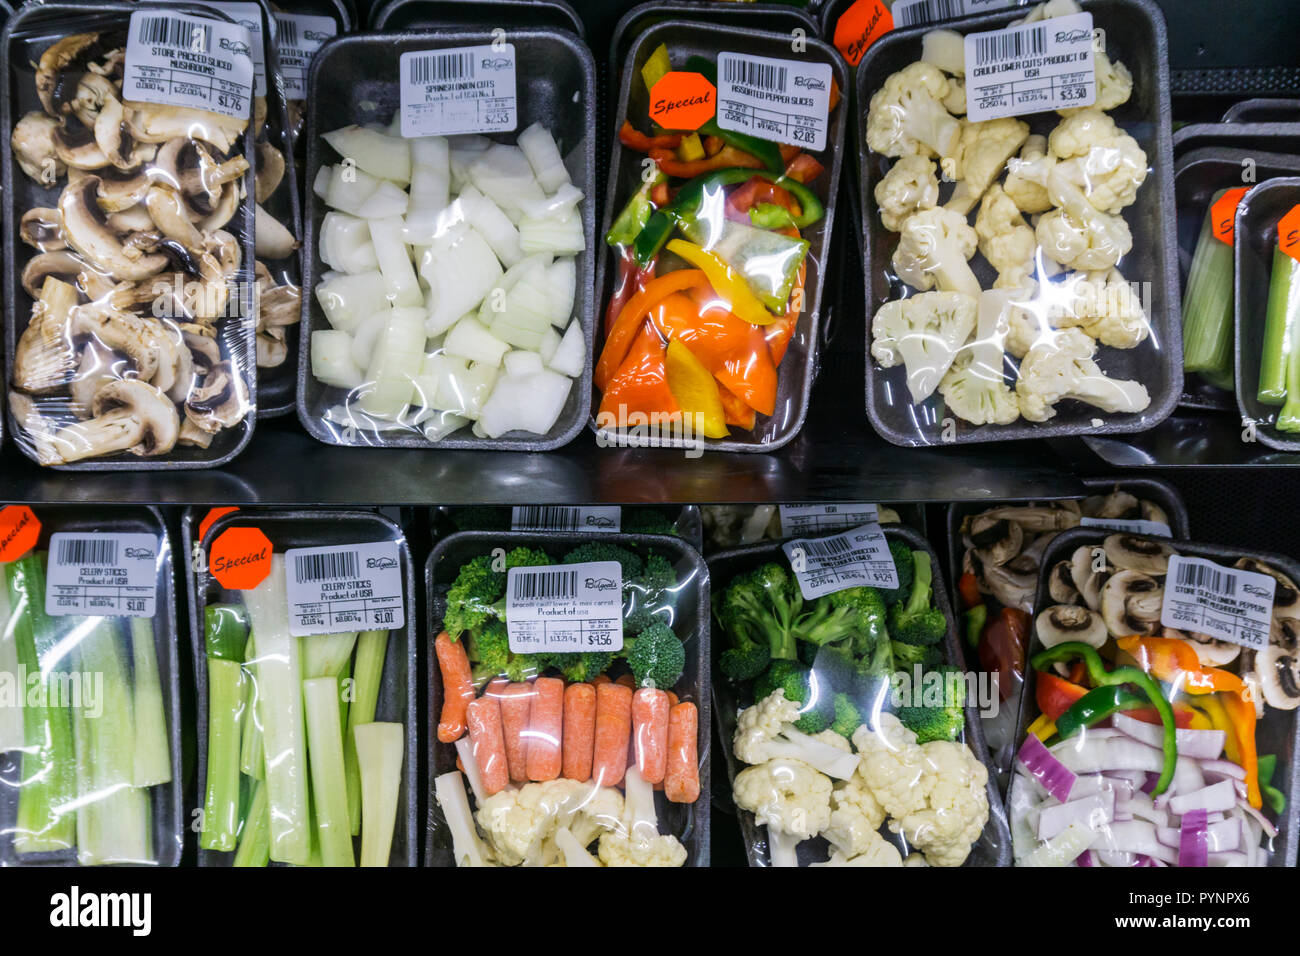 Prepared vegetables in shrink wrapped plastic on the shelves of a Canadian supermarket. - Stock Image